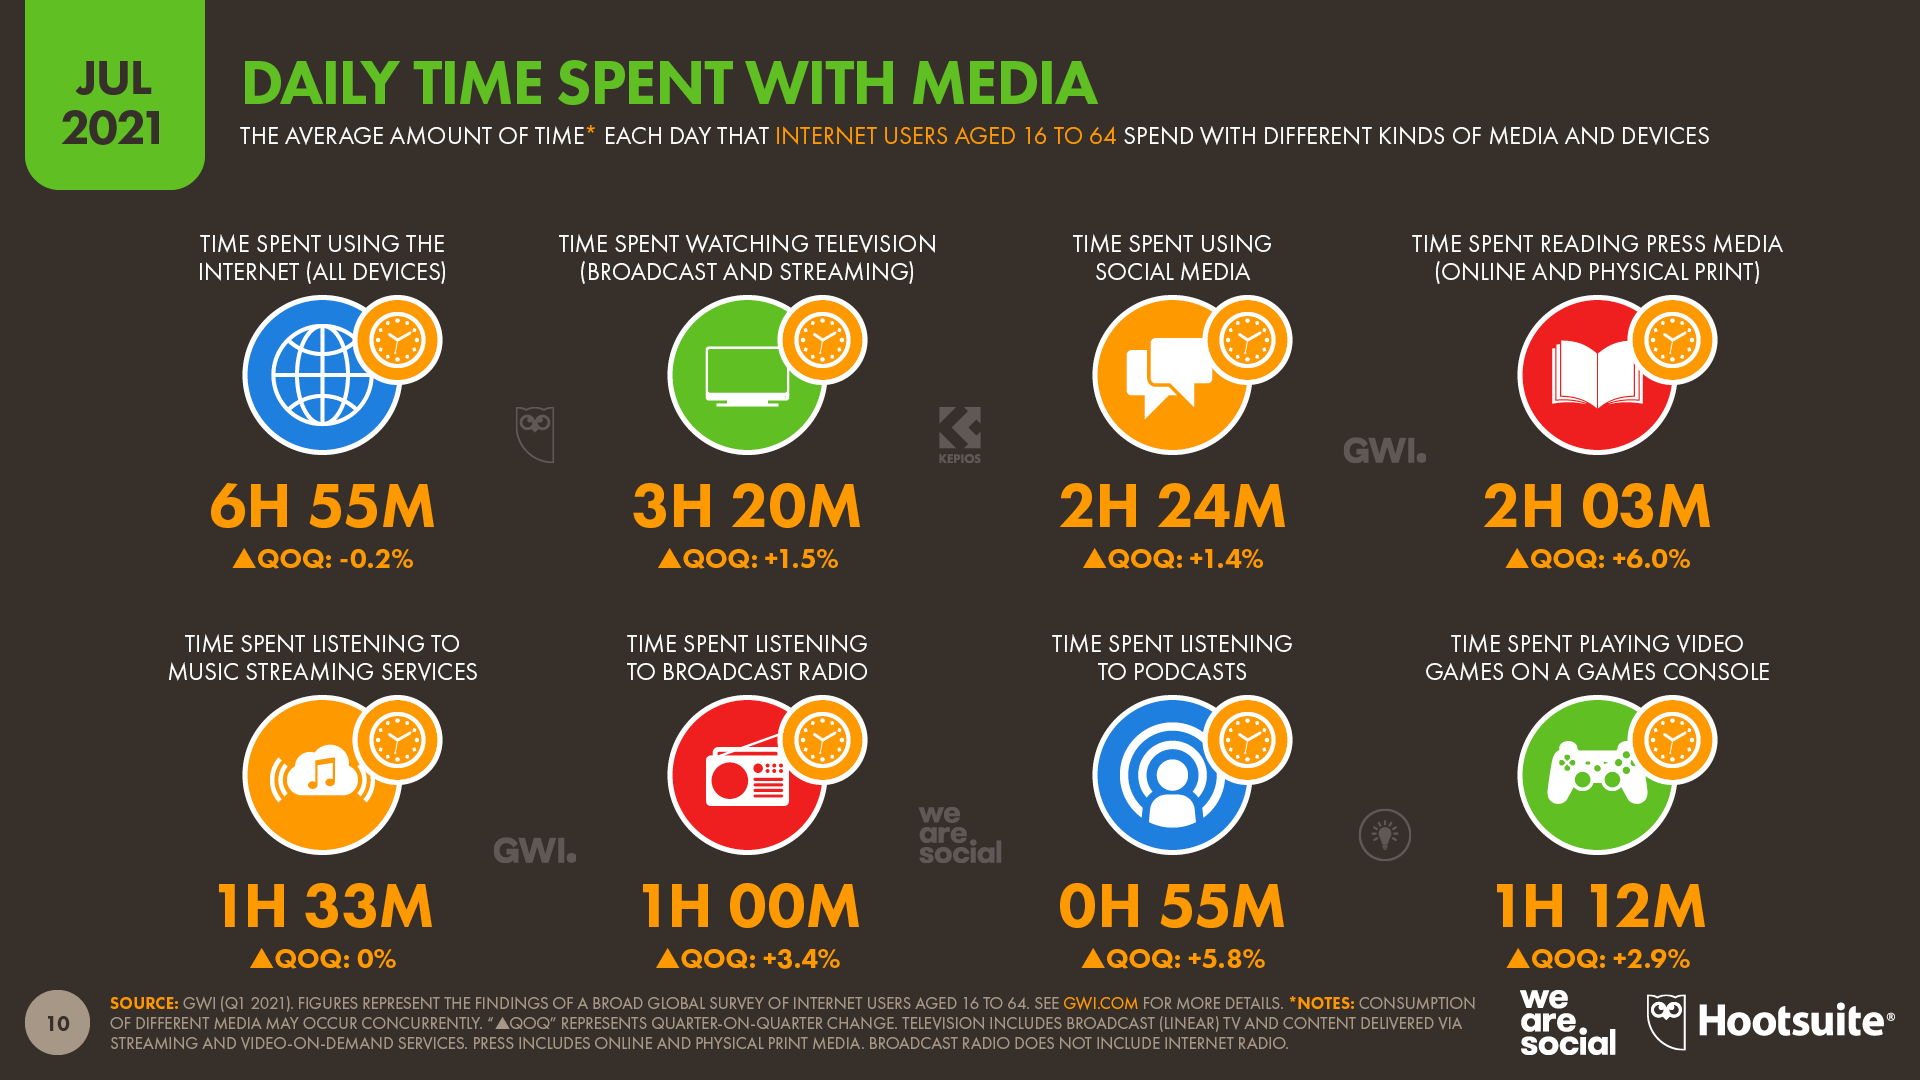 chart showing daily time spent with media as of July 2021